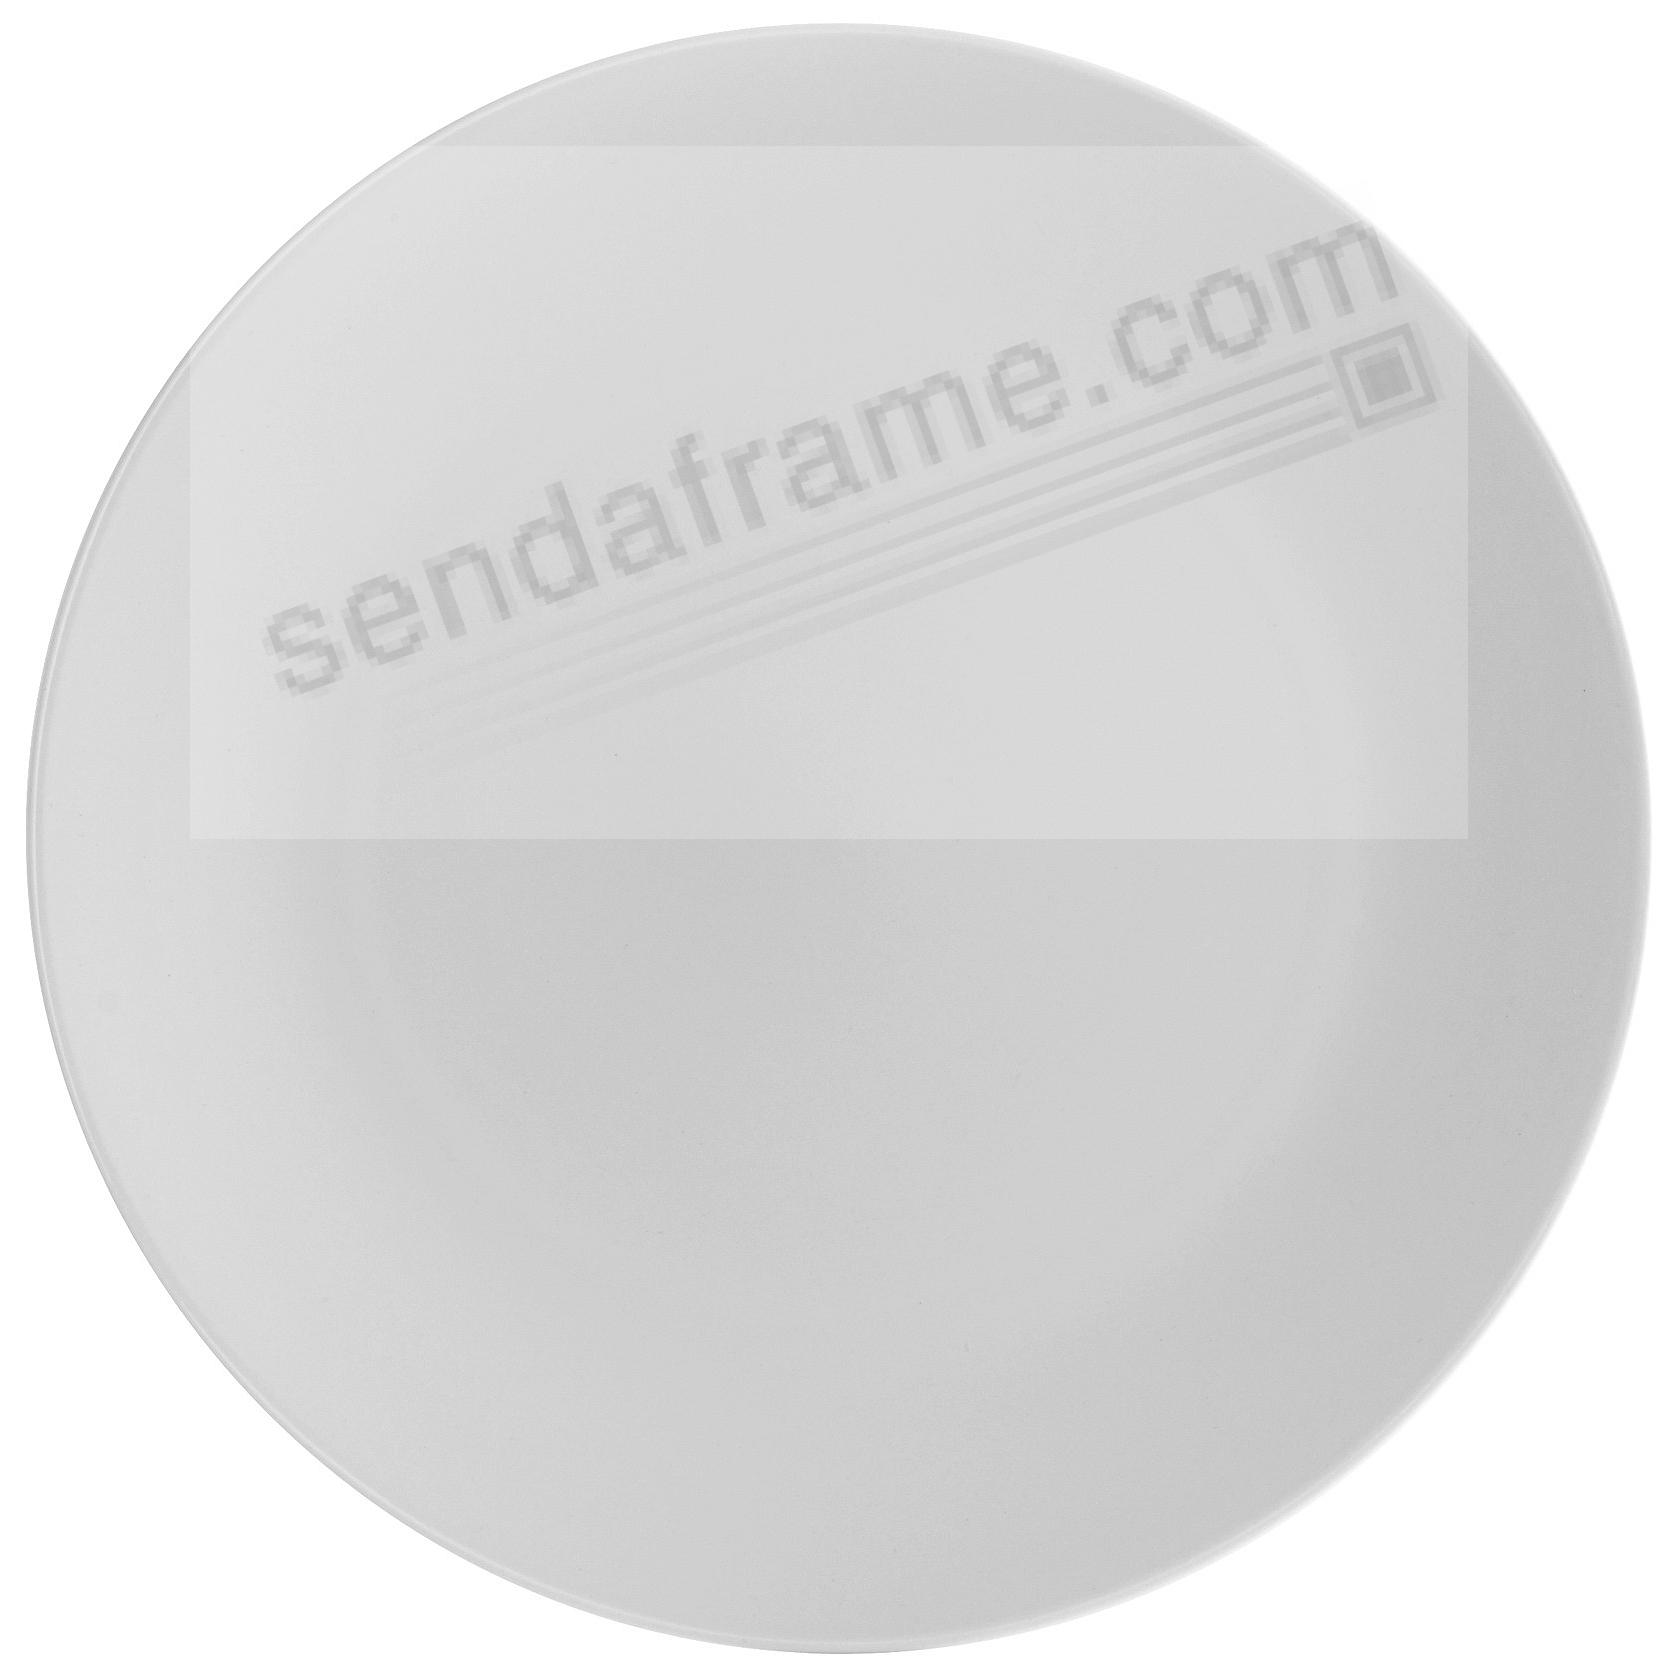 POP DINNER PLATE CHALK WHITE by Nambe®